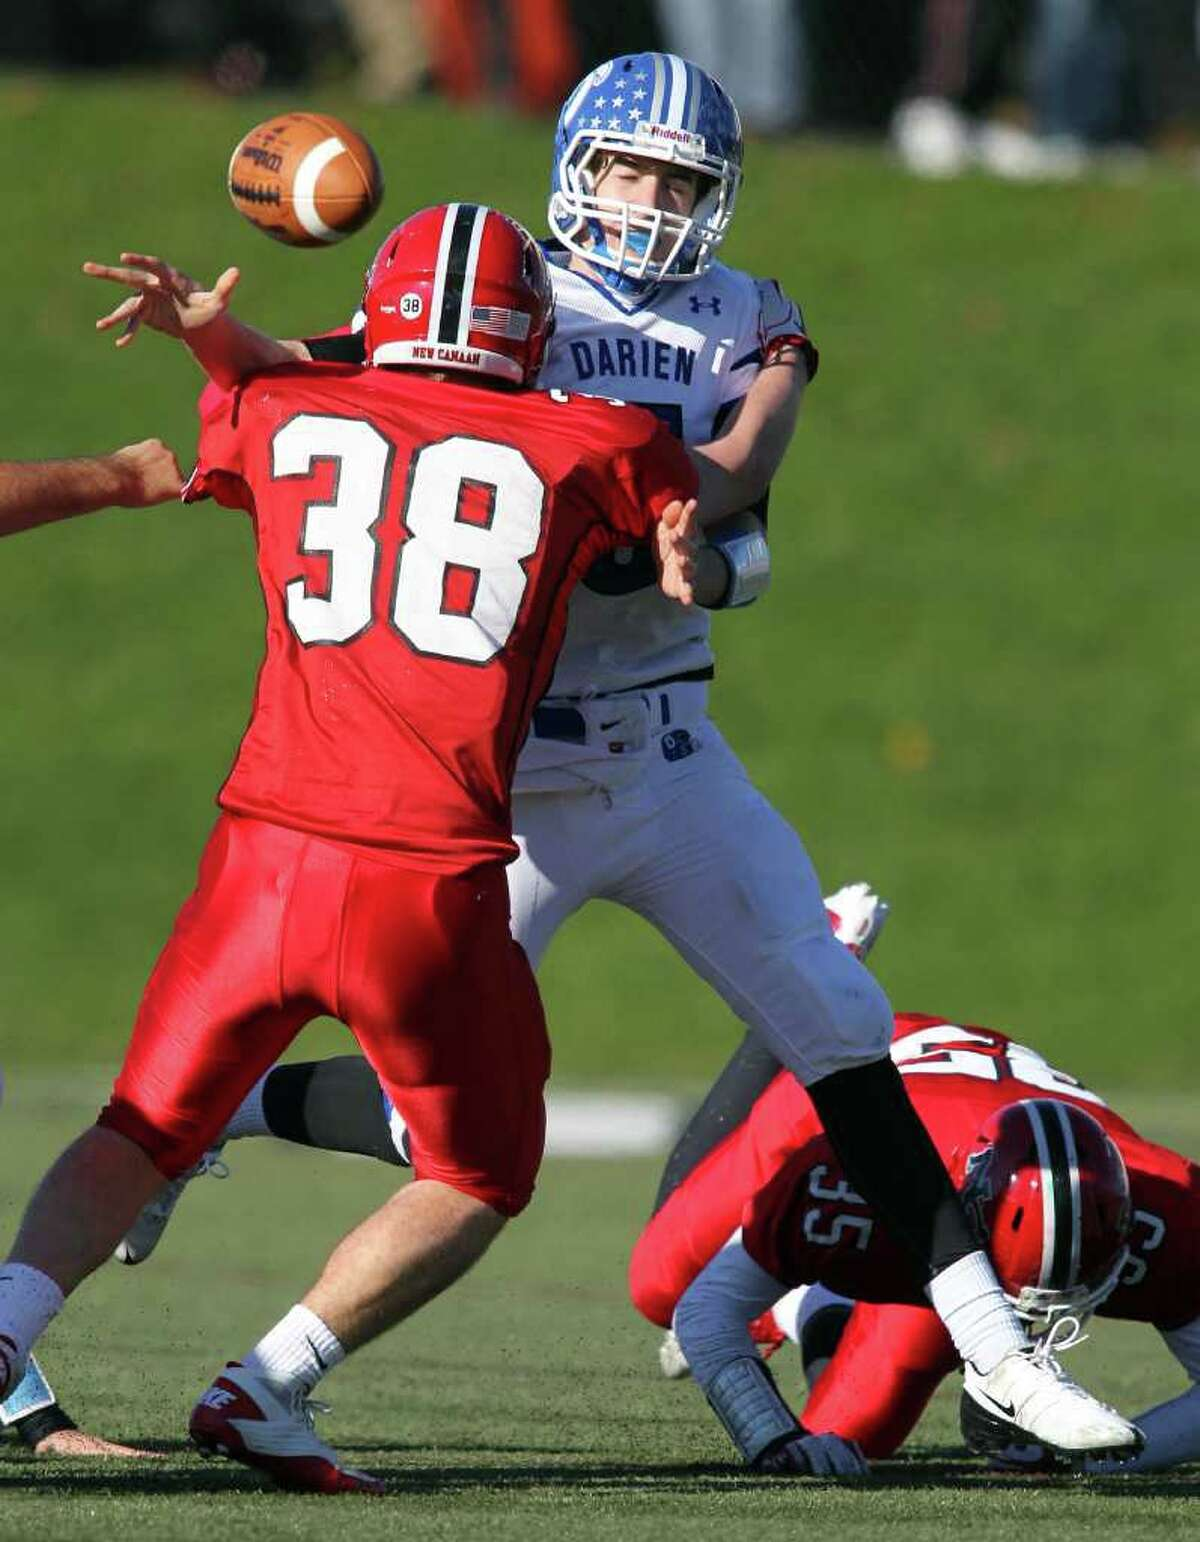 Hunter Budd of New Canaan applies defensive pressure against Darien QB Henry Baldwin forcing Baldwin to throw a harried and incomplete pass in third quarter Thanksgiving Day action. New Canaan manhandled Darien, 42-21.